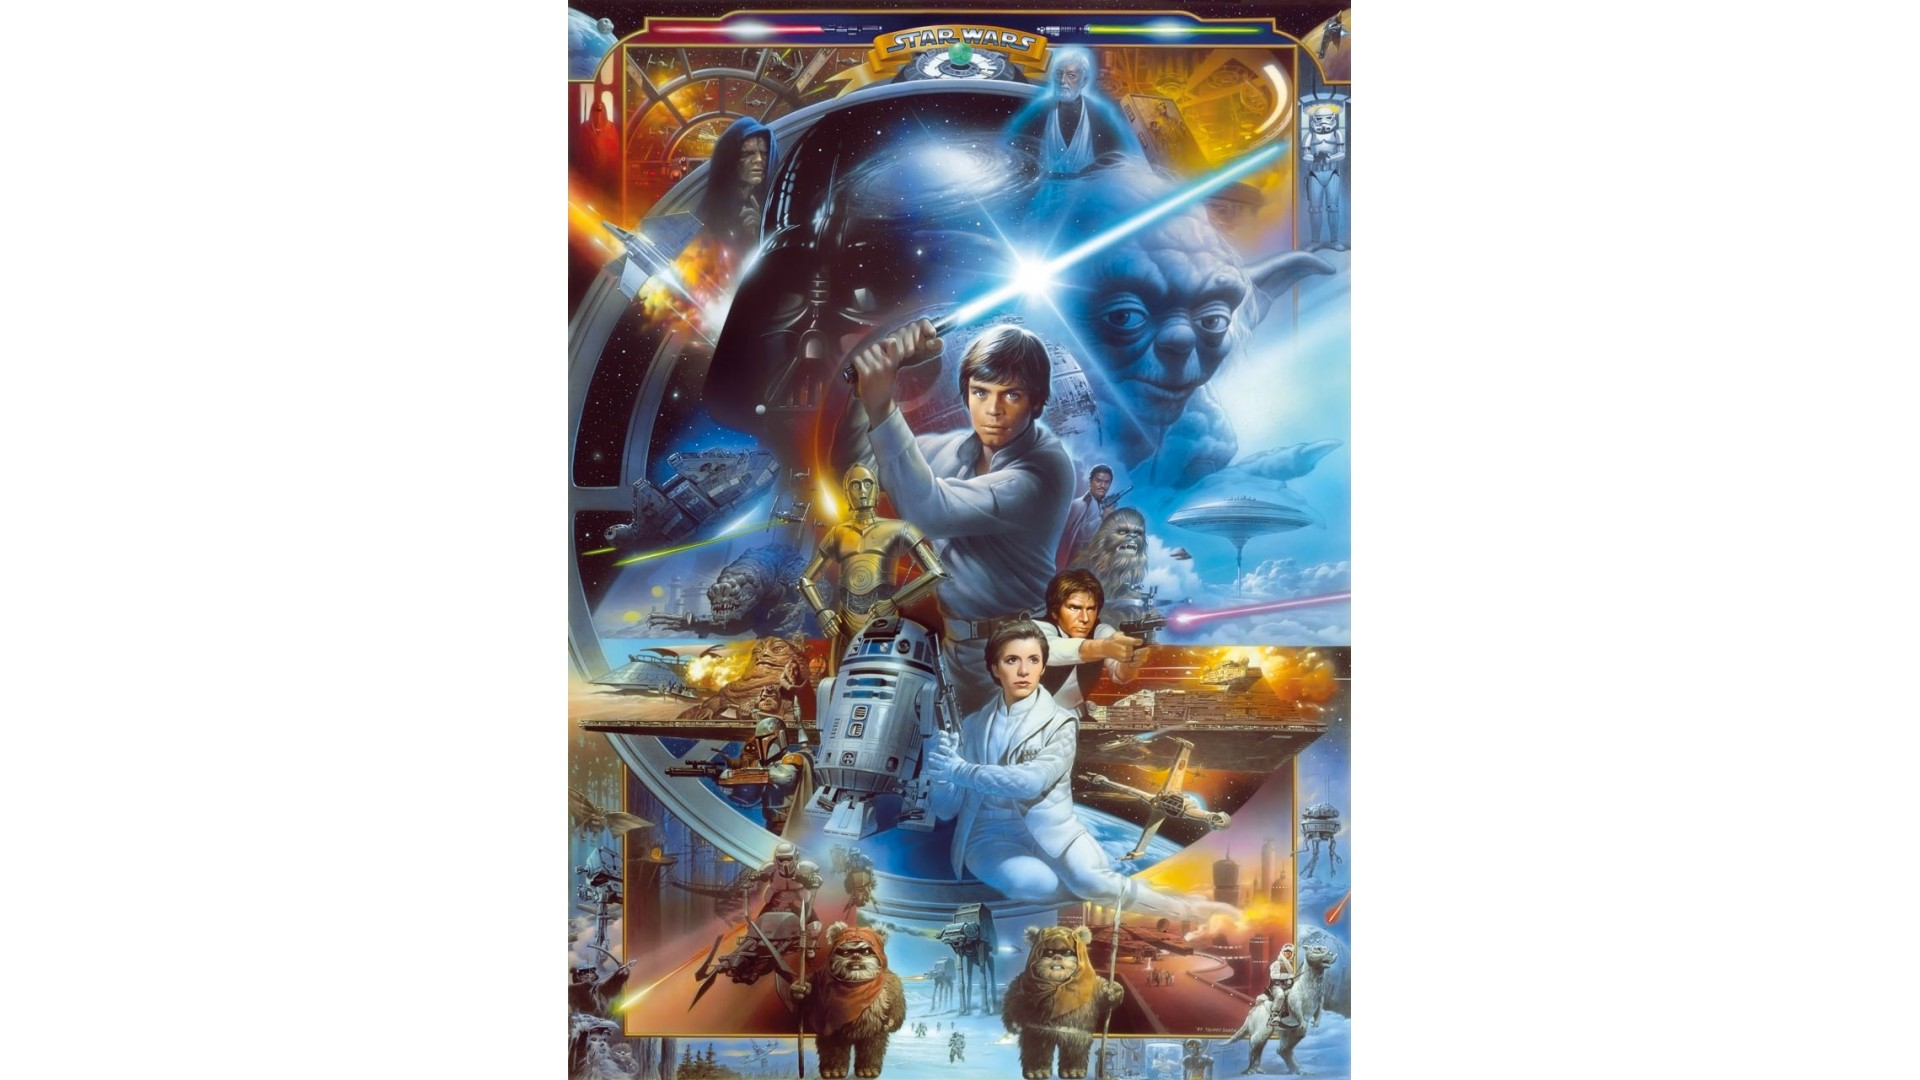 poster xxl star wars luke skywalker collage panoramique komar so nuit. Black Bedroom Furniture Sets. Home Design Ideas